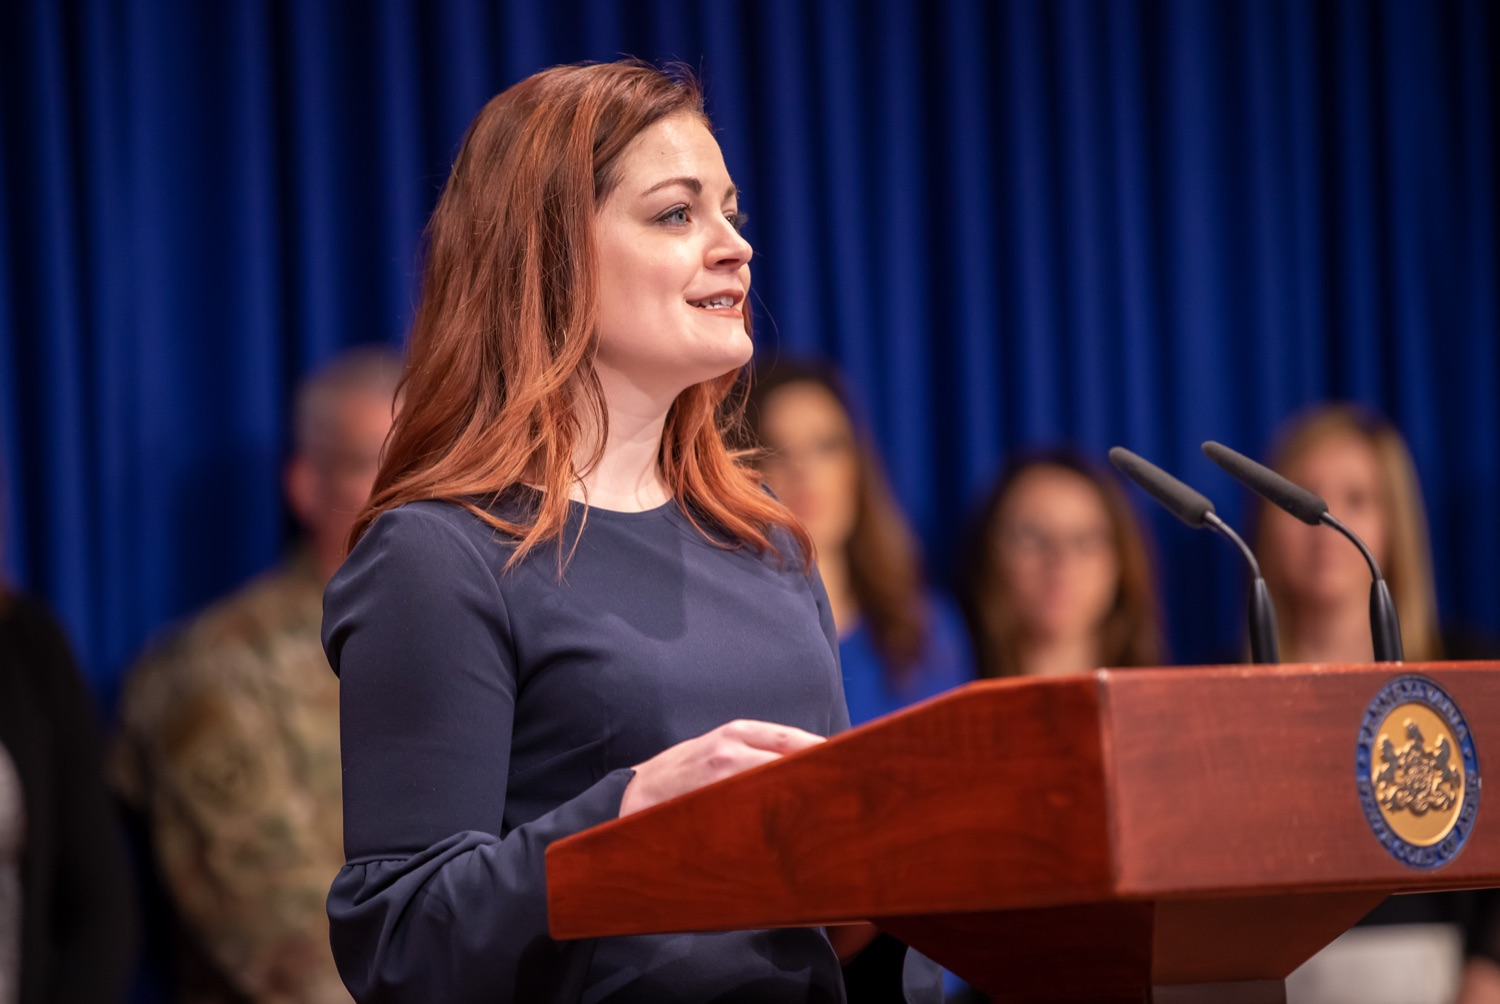 """<a href=""""https://filesource.wostreaming.net/commonwealthofpa/photo/17711_DHS_SuicidePrevention_AG_14.jpg"""" target=""""_blank"""">⇣Download Photo<br></a>Harrisburg, PA.  Caitlin Palmer of the Department of Human Services, speaks at todays event discussing the initial report of Pennsylvanias Suicide Prevention Task Force based on the statewide listening sessions held throughout fall 2019. The work of the Suicide Prevention Task Force is a complement to the goals and strategies surrounding the governors Reach Out PA: Your Mental Health Matters initiative announced earlier this month and his Executive Order to protect vulnerable populations signed last year.  January 14, 2020."""